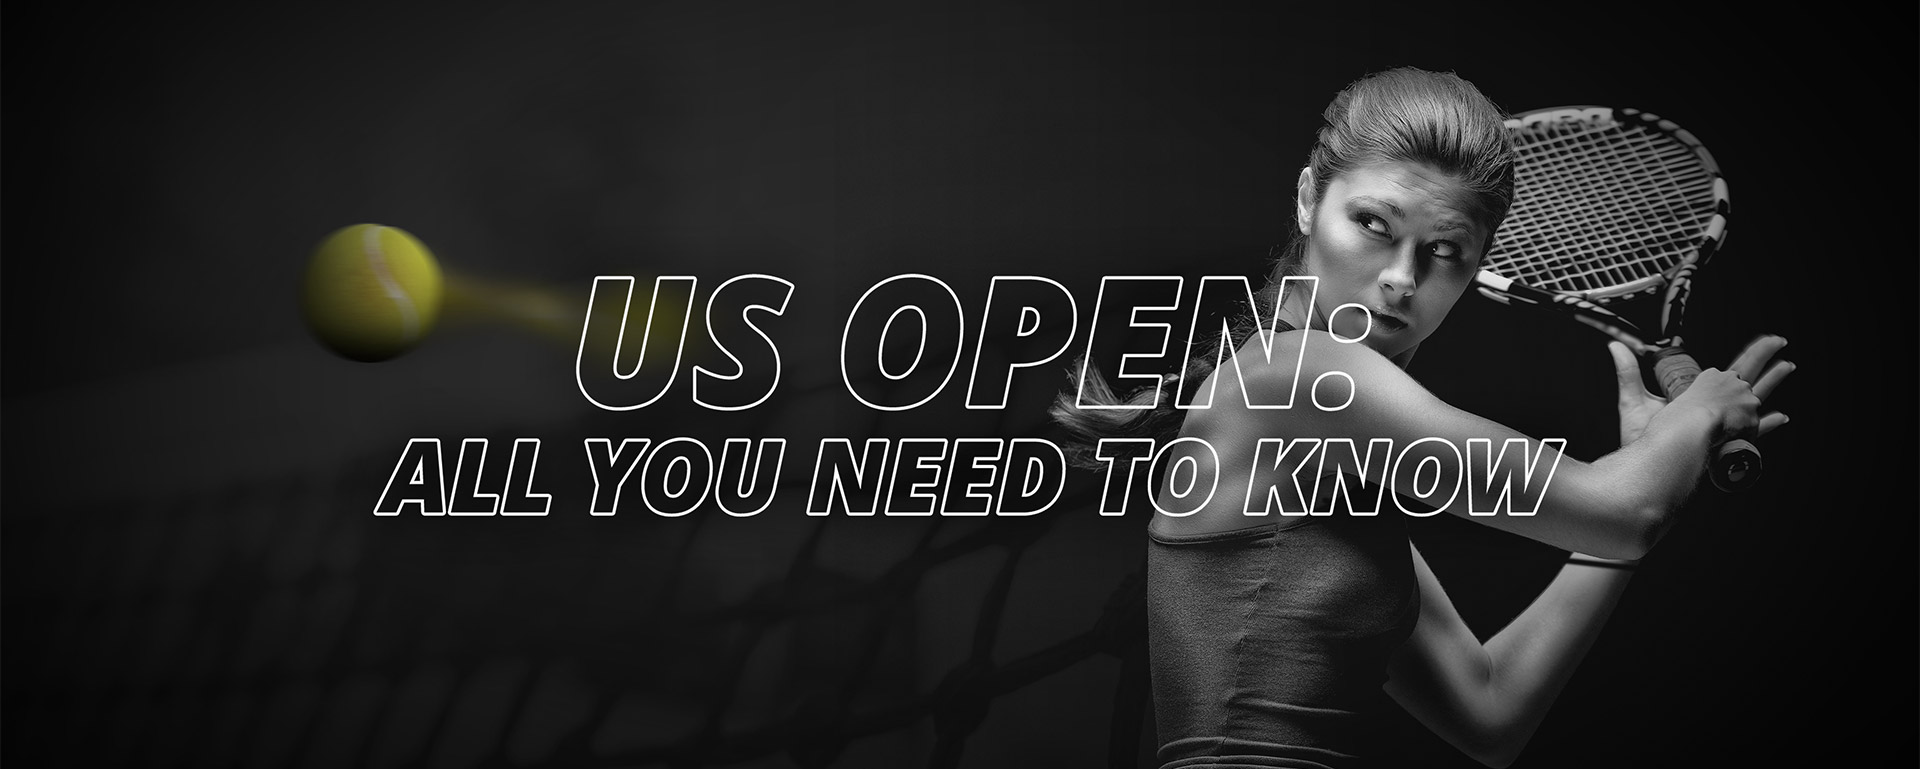 US OPEN: ALL YOU NEED TO KNOW